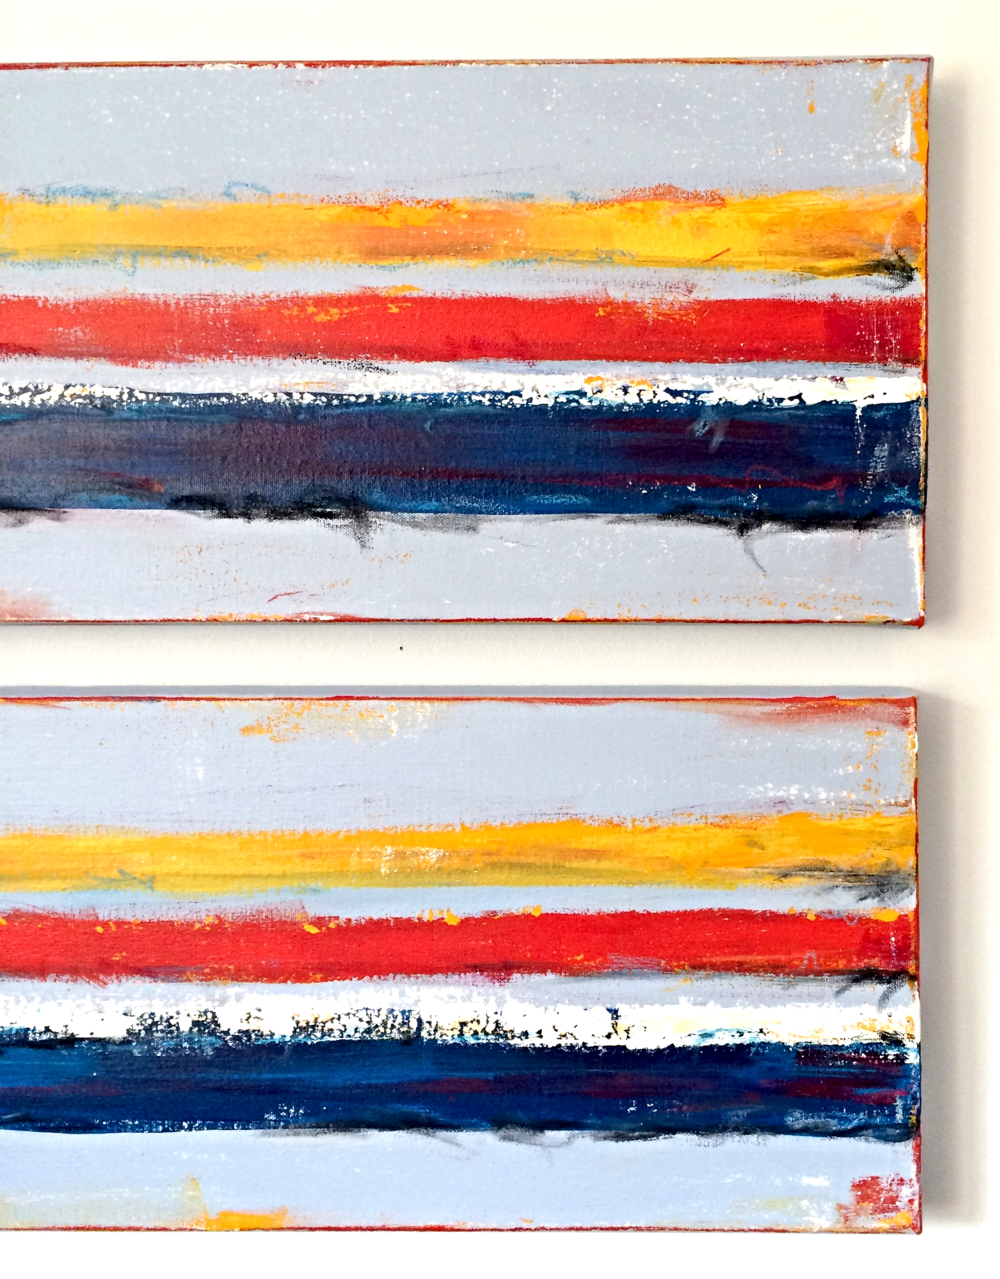 ABSTRACT ART, DIPTYCH, 10X30INCH